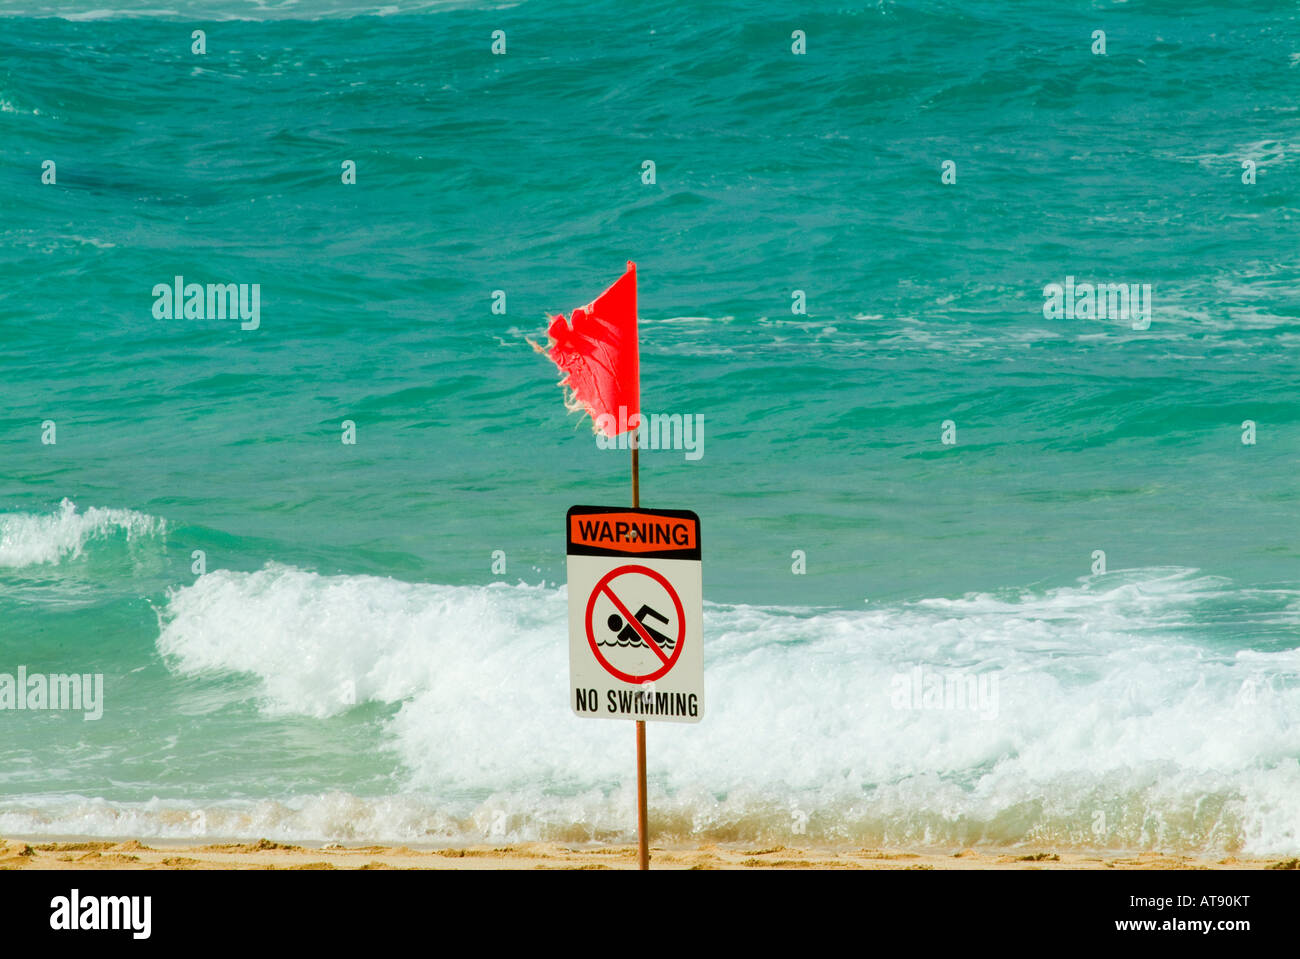 A red flag warns swimmers of high surf at the north shore on the island of Oahu. Stock Photo